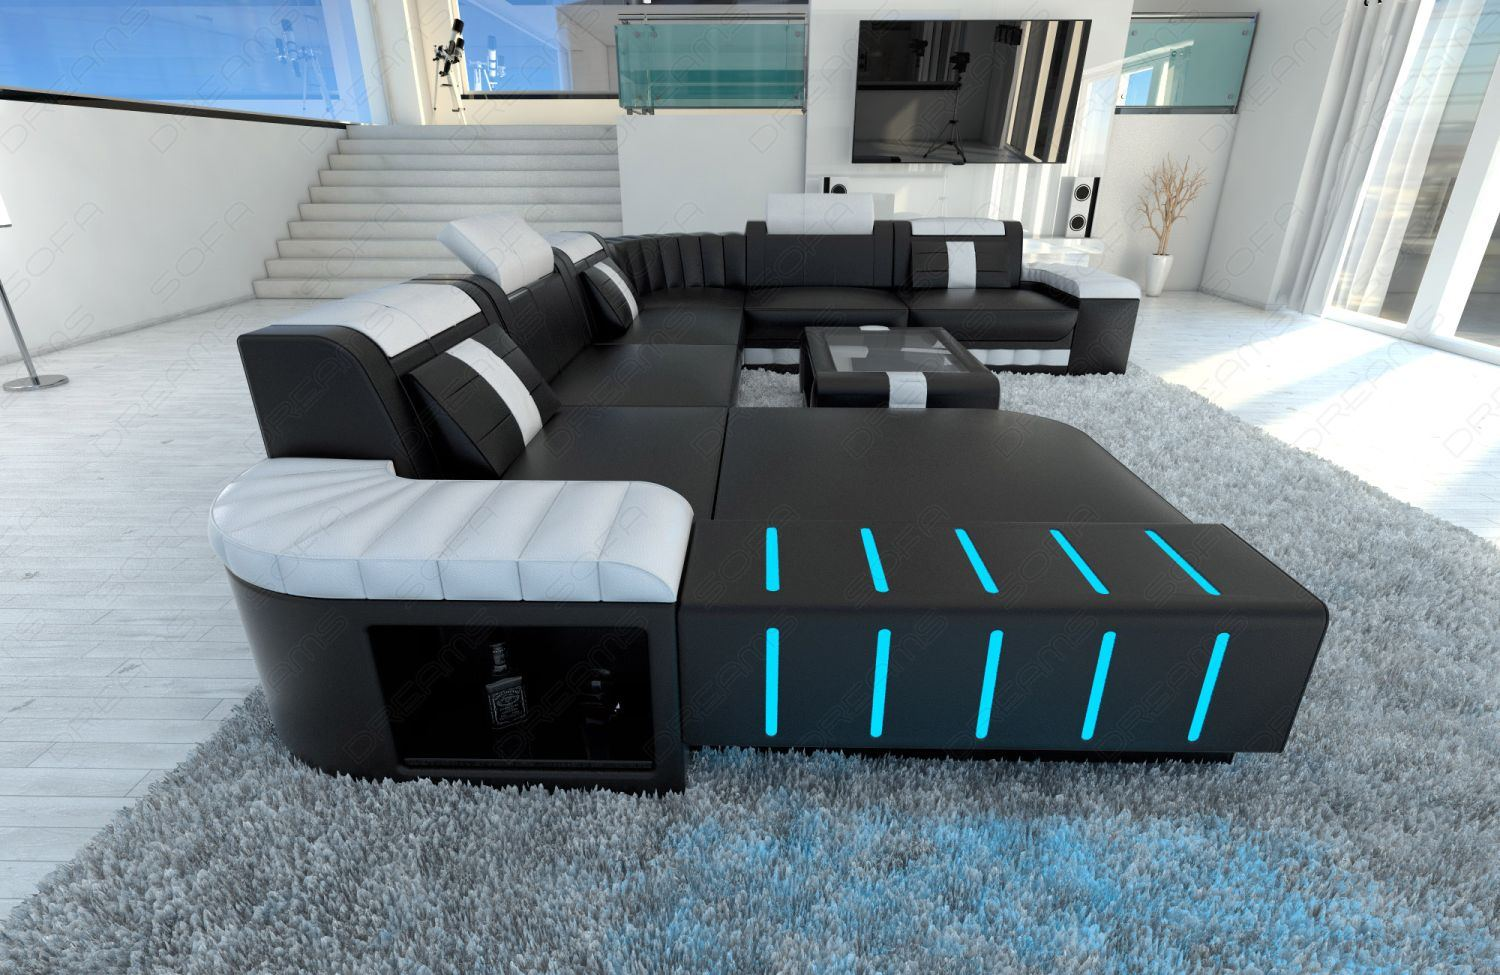 sofa bellagio xxl leather sofa led lighting colour selection usb port couch ebay. Black Bedroom Furniture Sets. Home Design Ideas